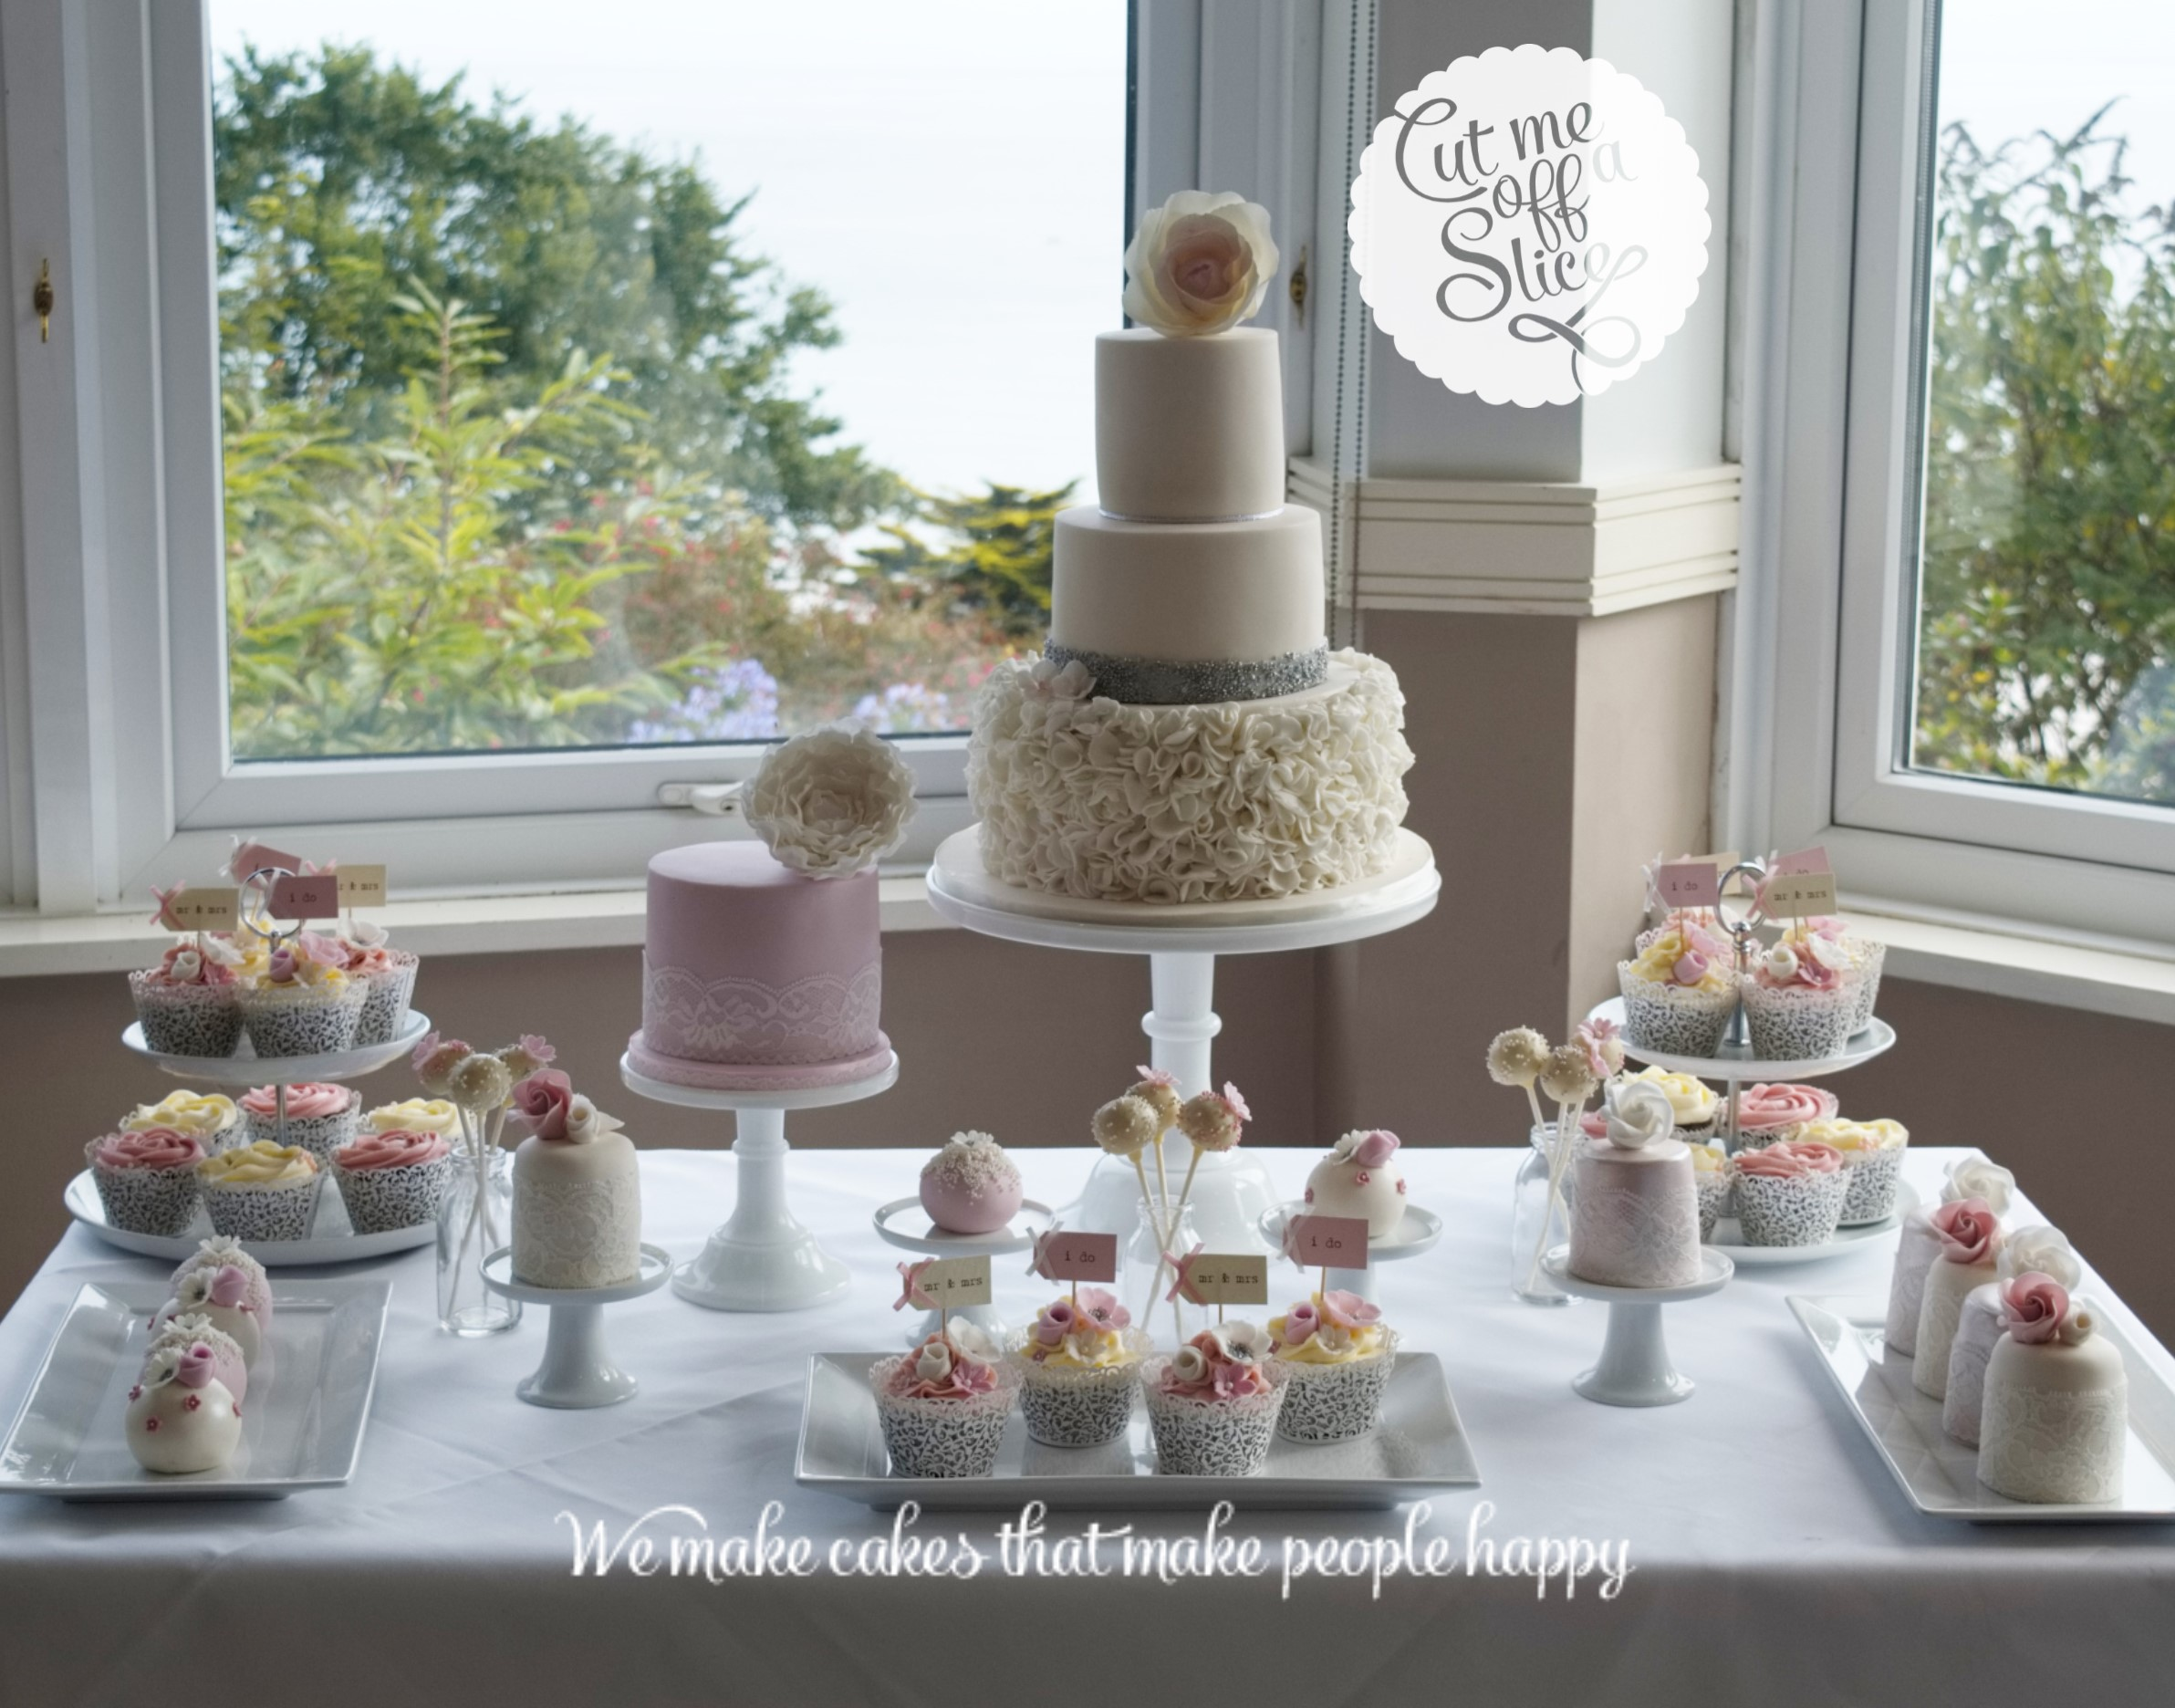 Wedding Cake Table.Cake Tables Wedding Cakes Cut Me Off A Slice The Cake Makers